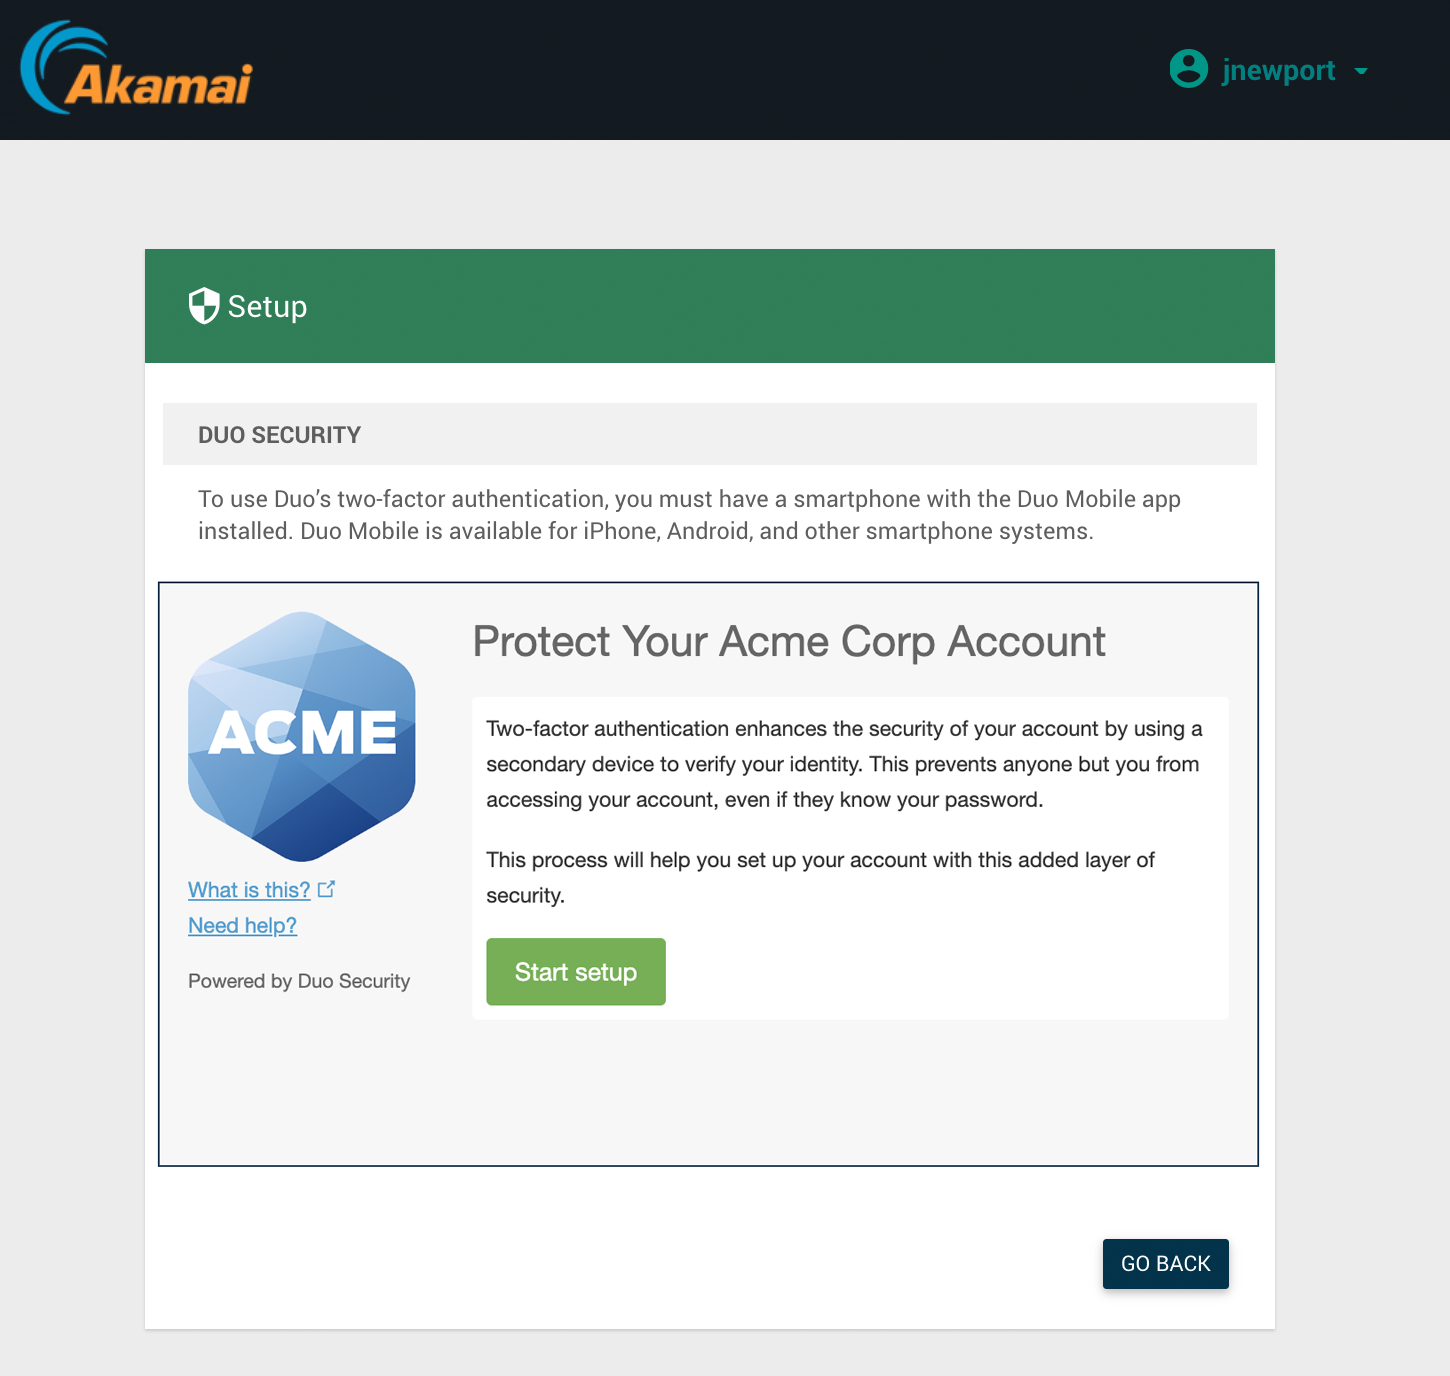 Akamai EAA User Duo Enrollment